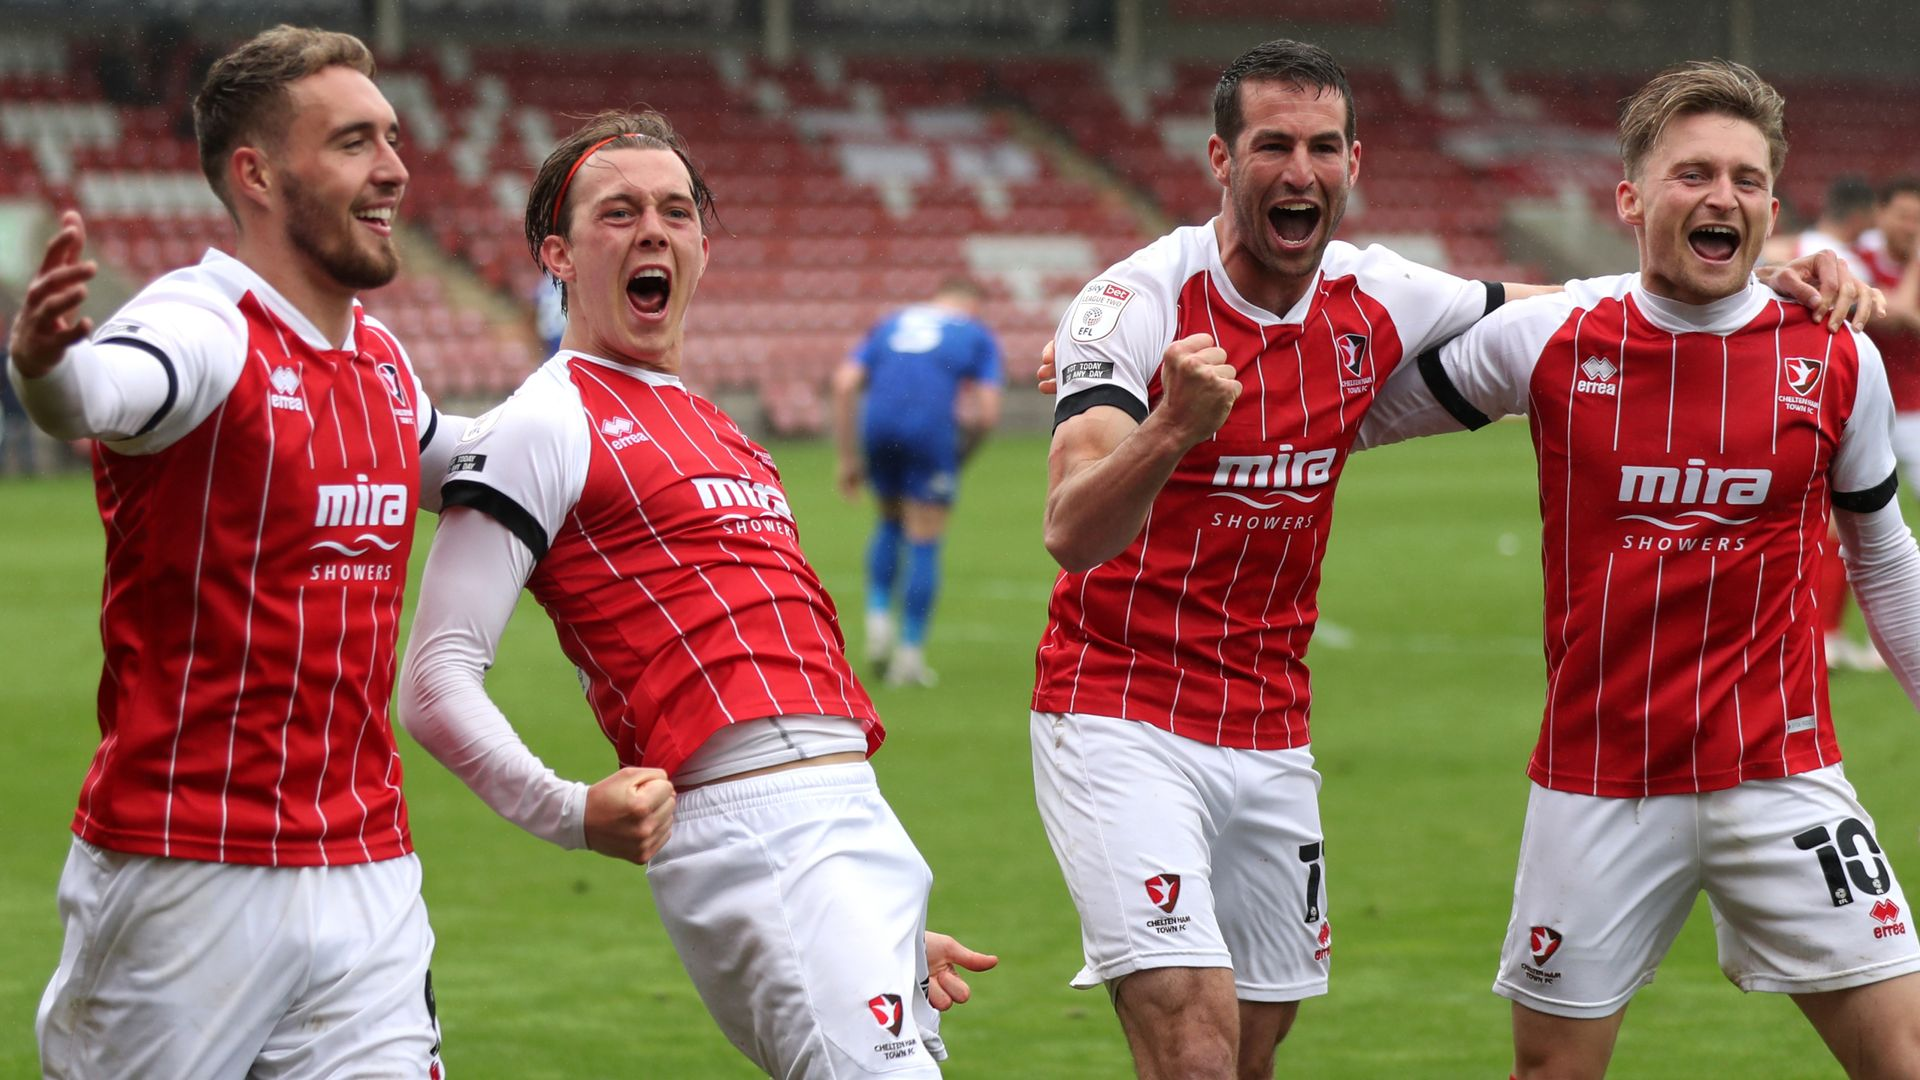 League Two highlights and round-up: Cheltenham champions; Bolton, Cambridge